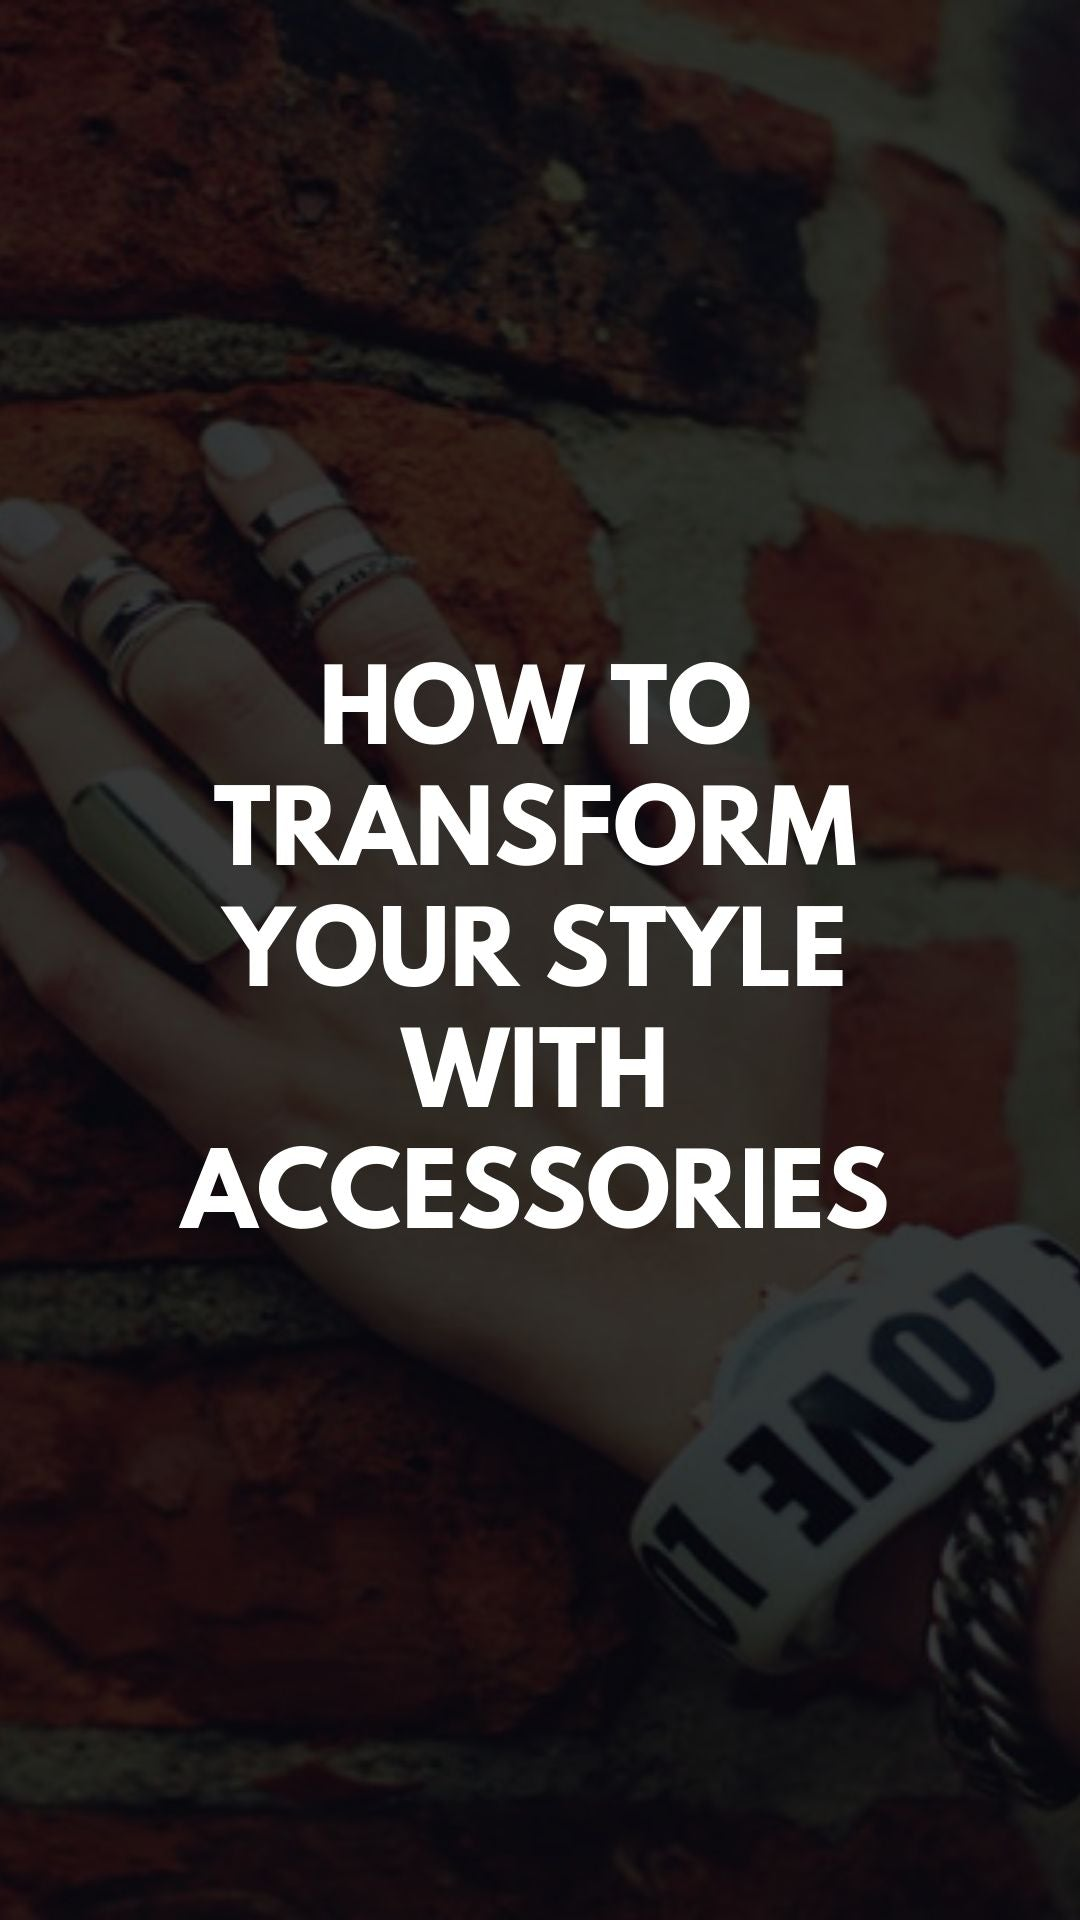 How to Transform Your Style with Accessories